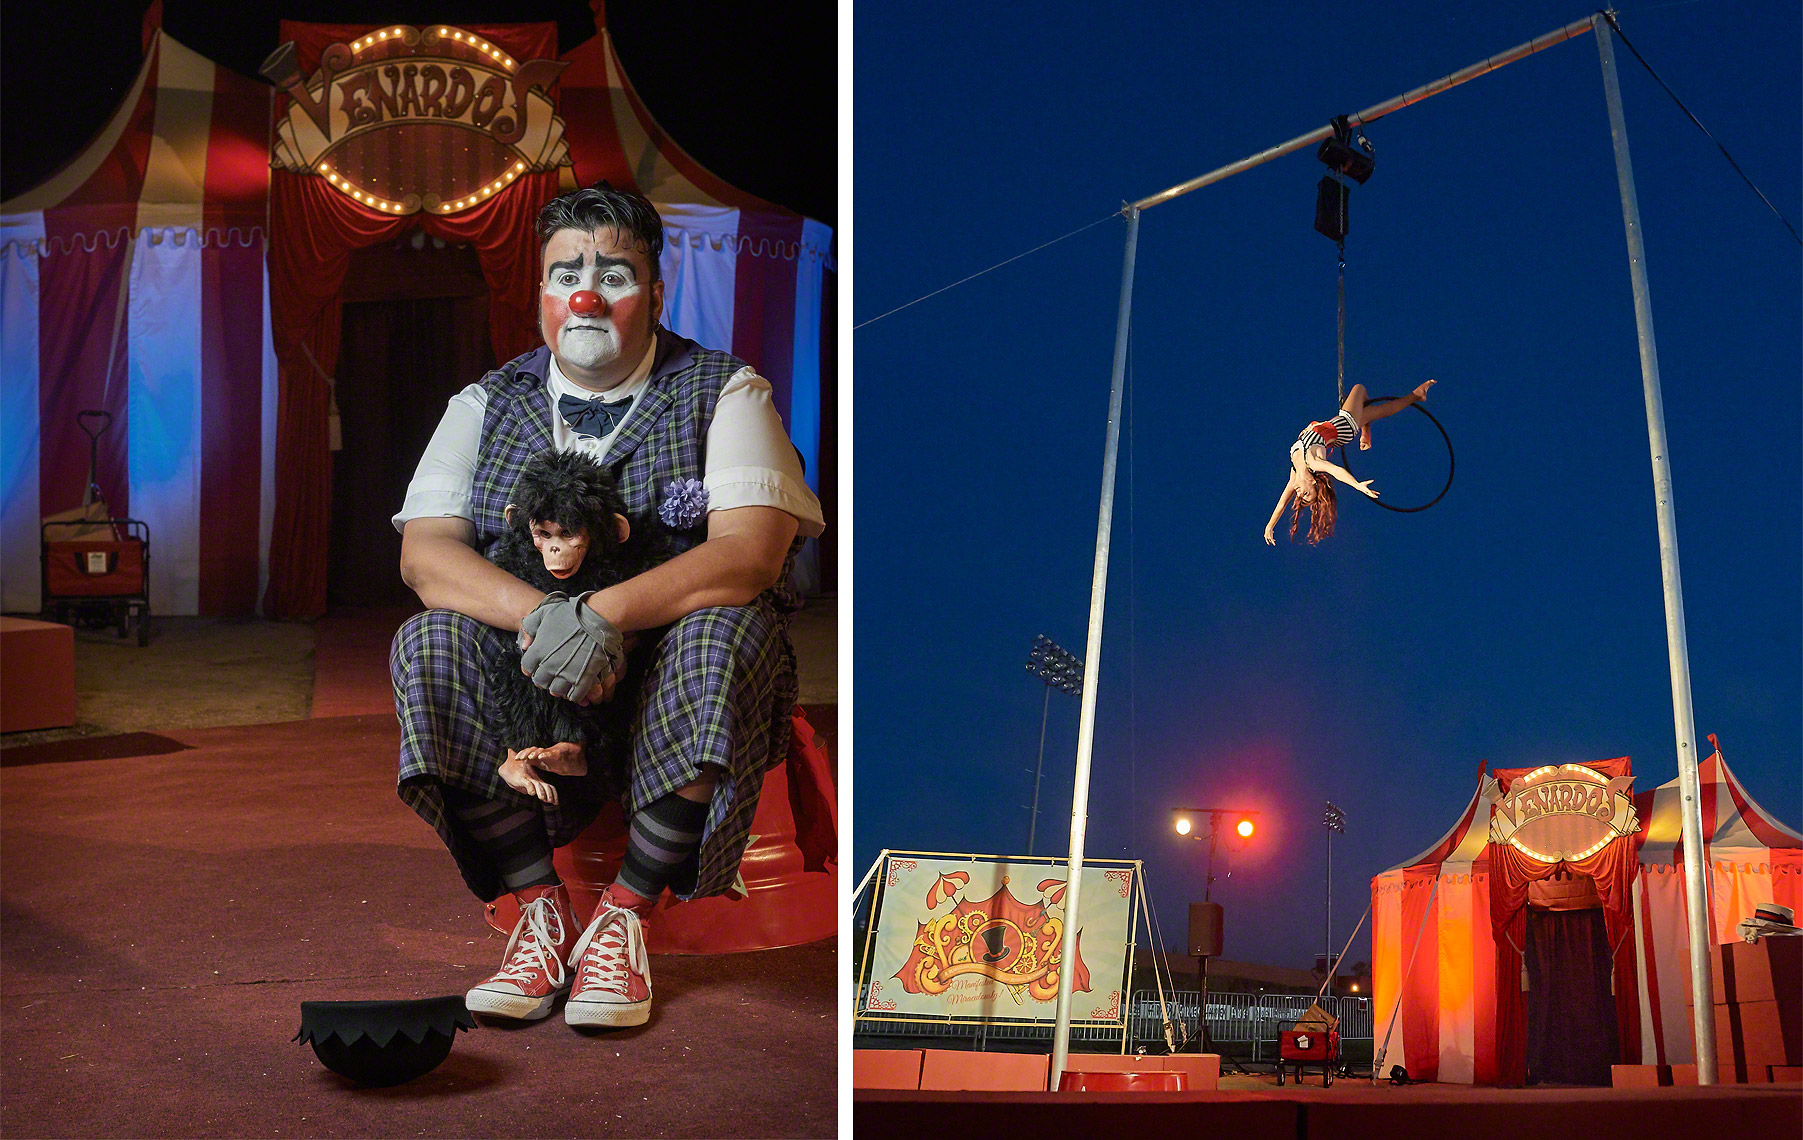 Venardos Circus Clown and Aerialist